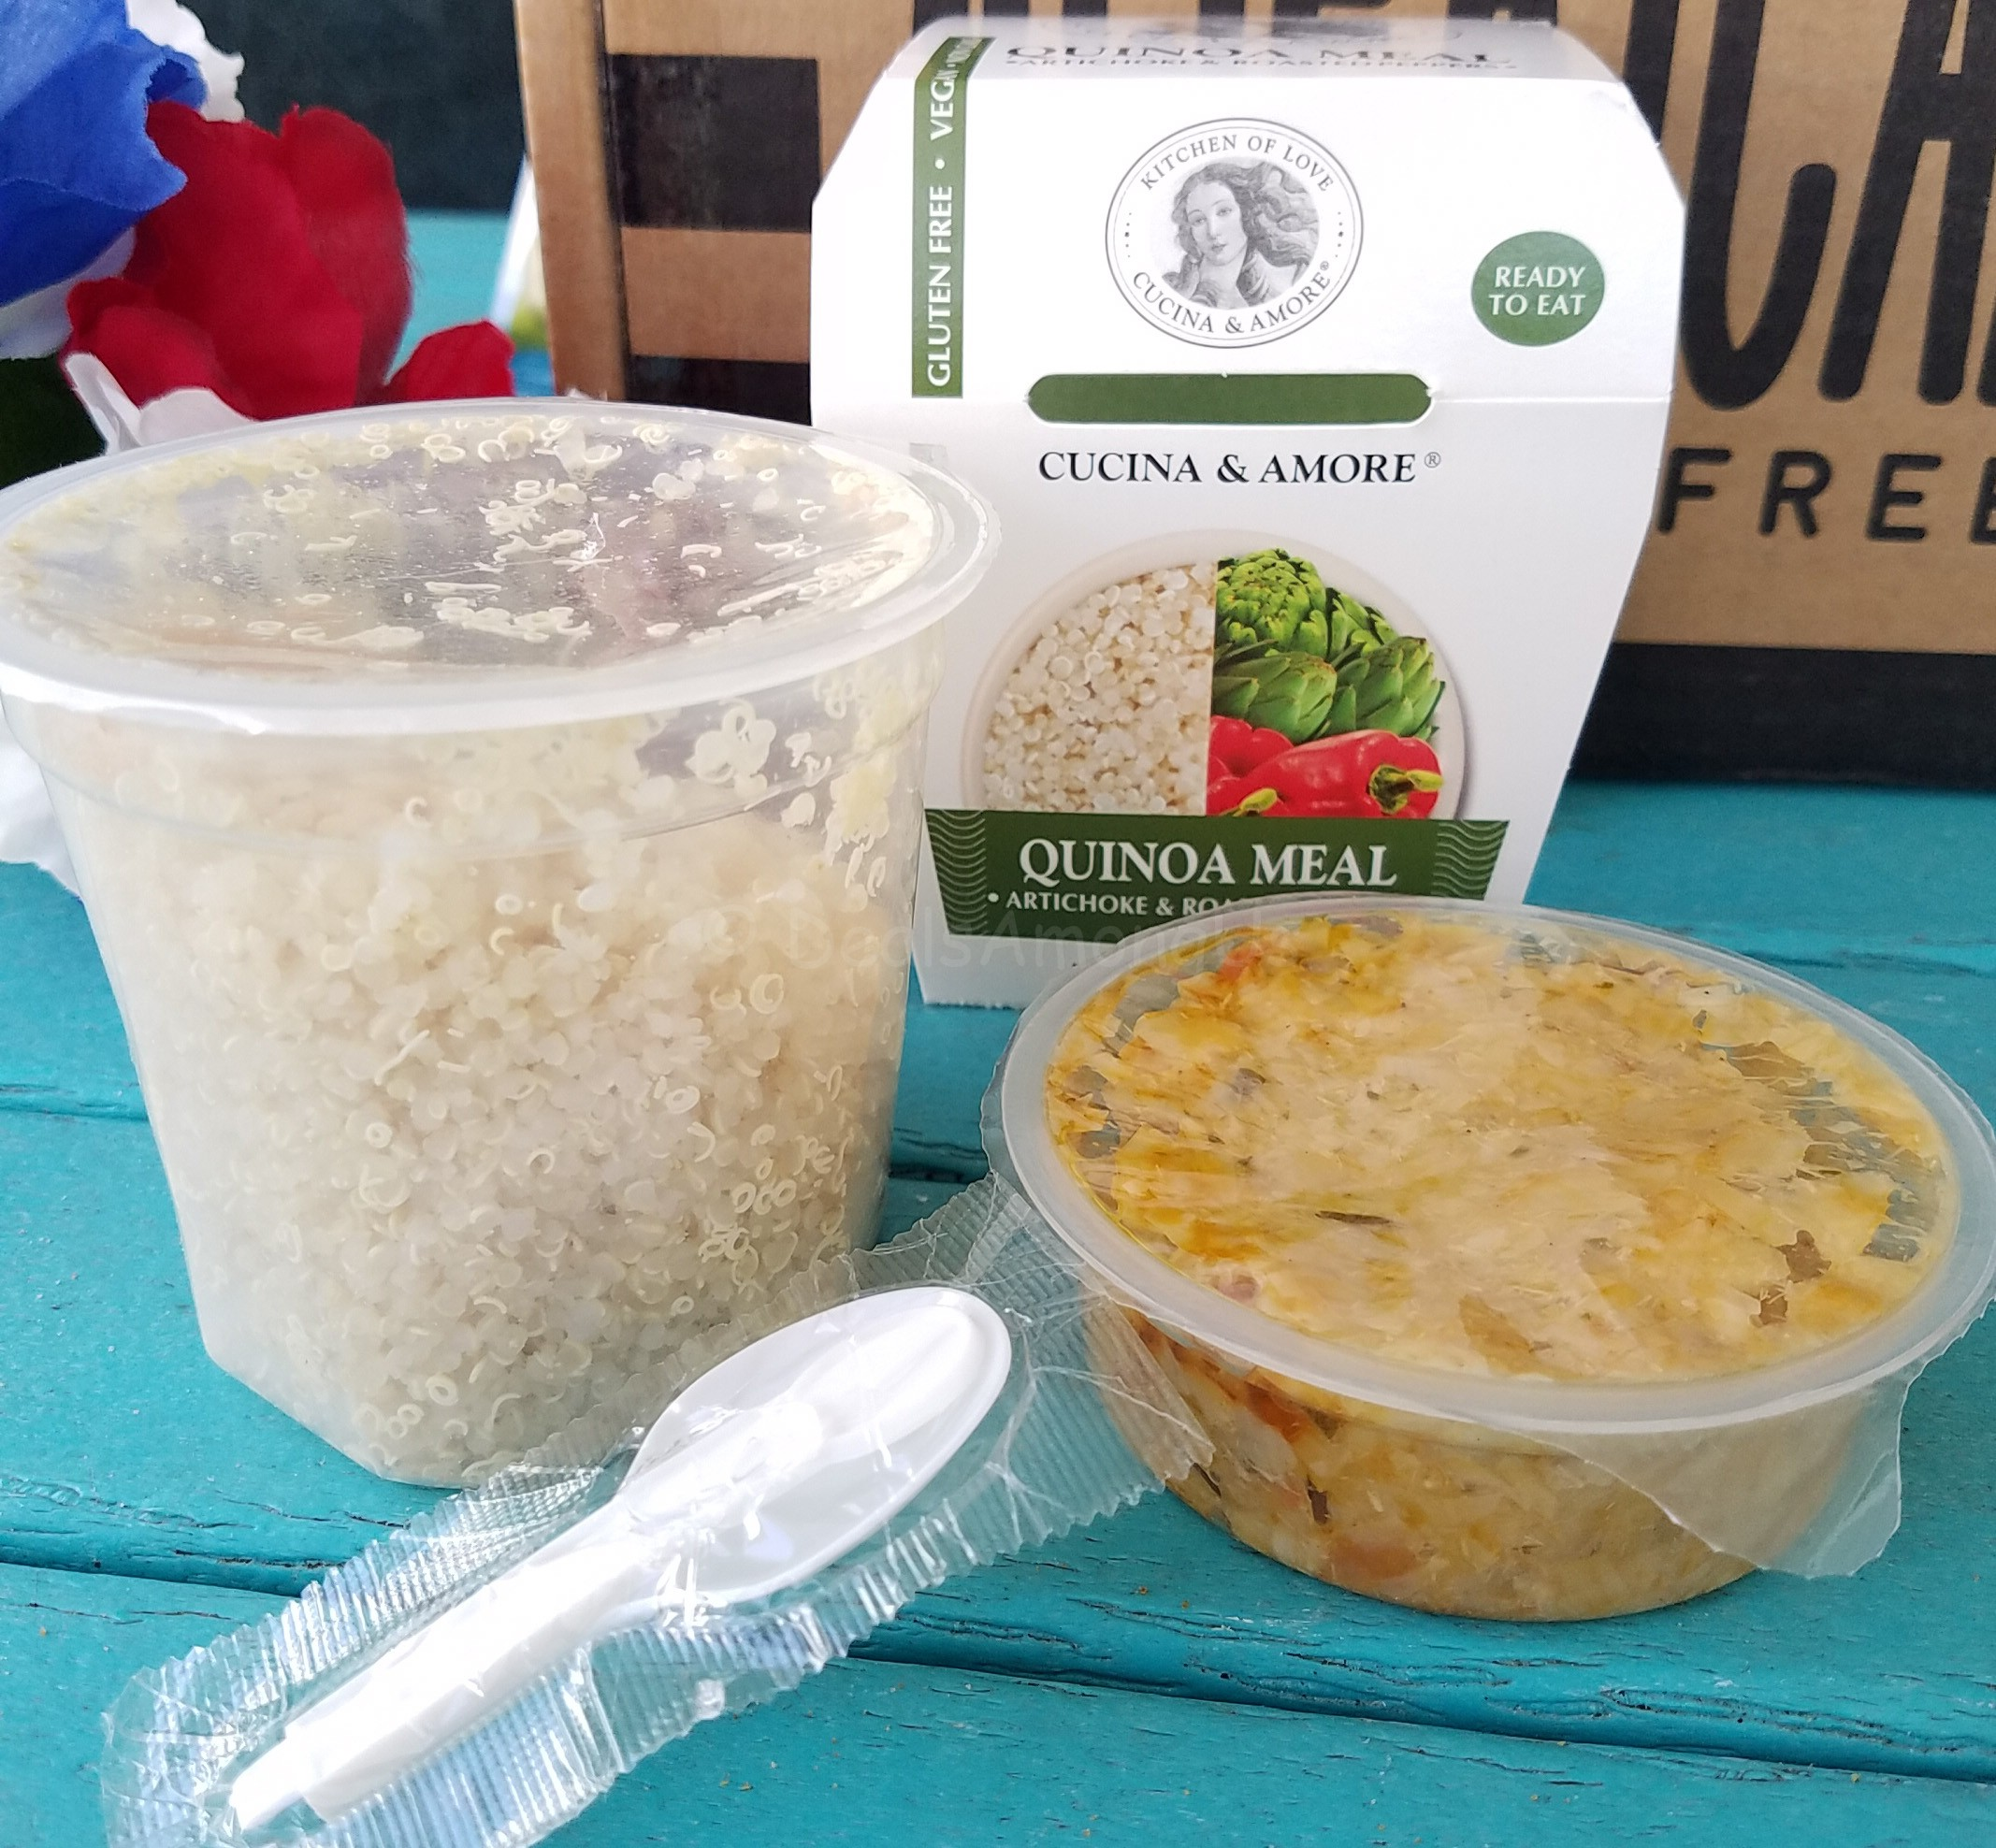 Cucina And Amore Quinoa Review Dealsamongus